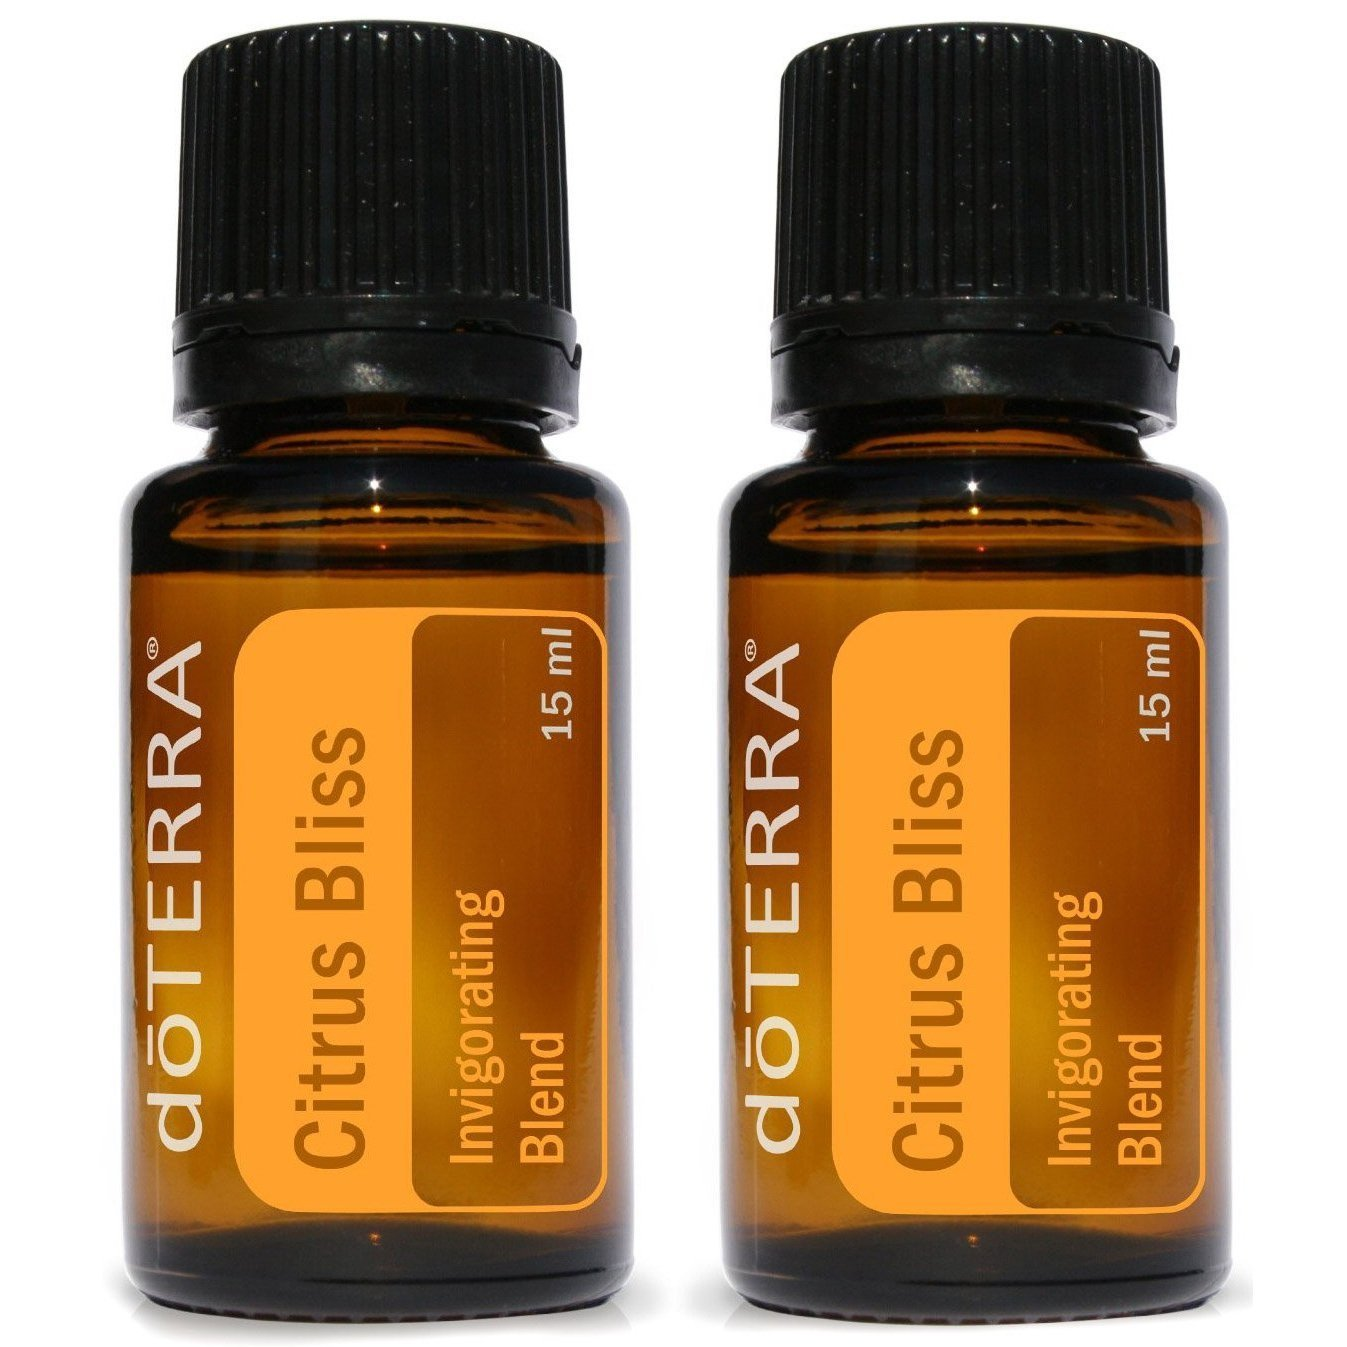 doTERRA Citrus Bliss Essential Oil Invigorating Blend 15 ml (2 pack) by doTERRA